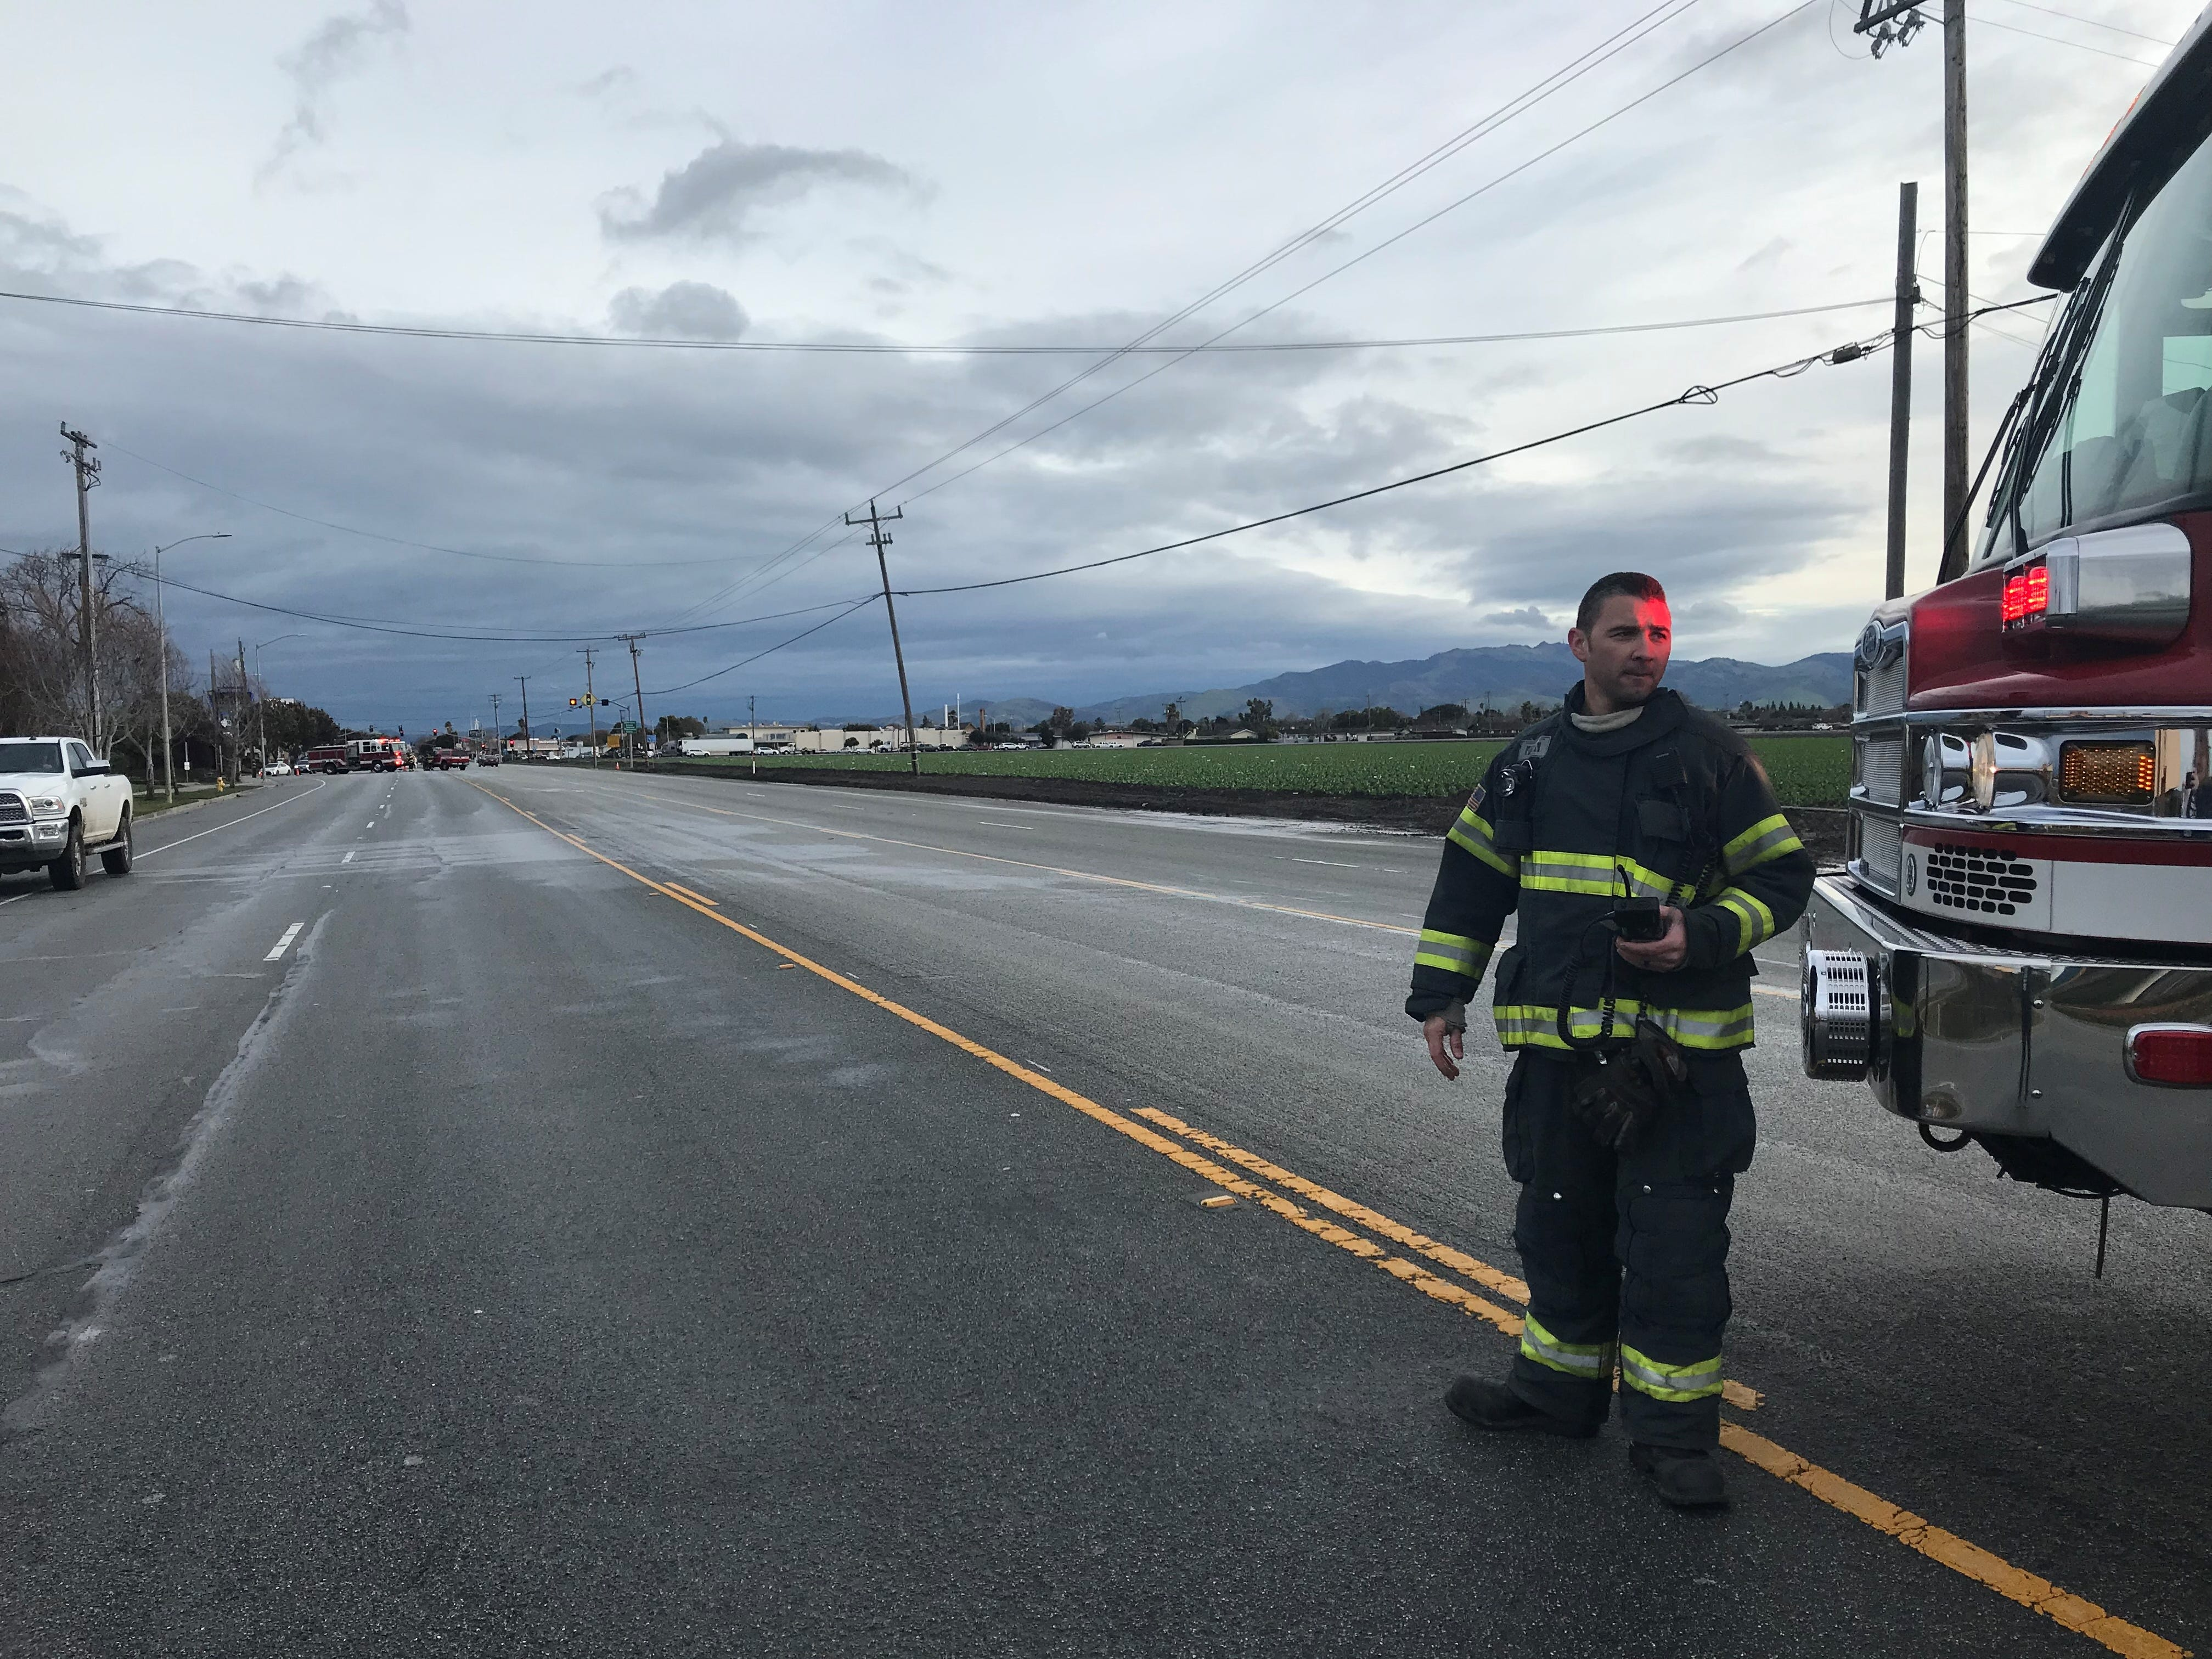 Salinas Fire has shut down the road for a half mile south of West Blanco Road and South Main Street due to high winds knocking a telephone pole off-kilter.